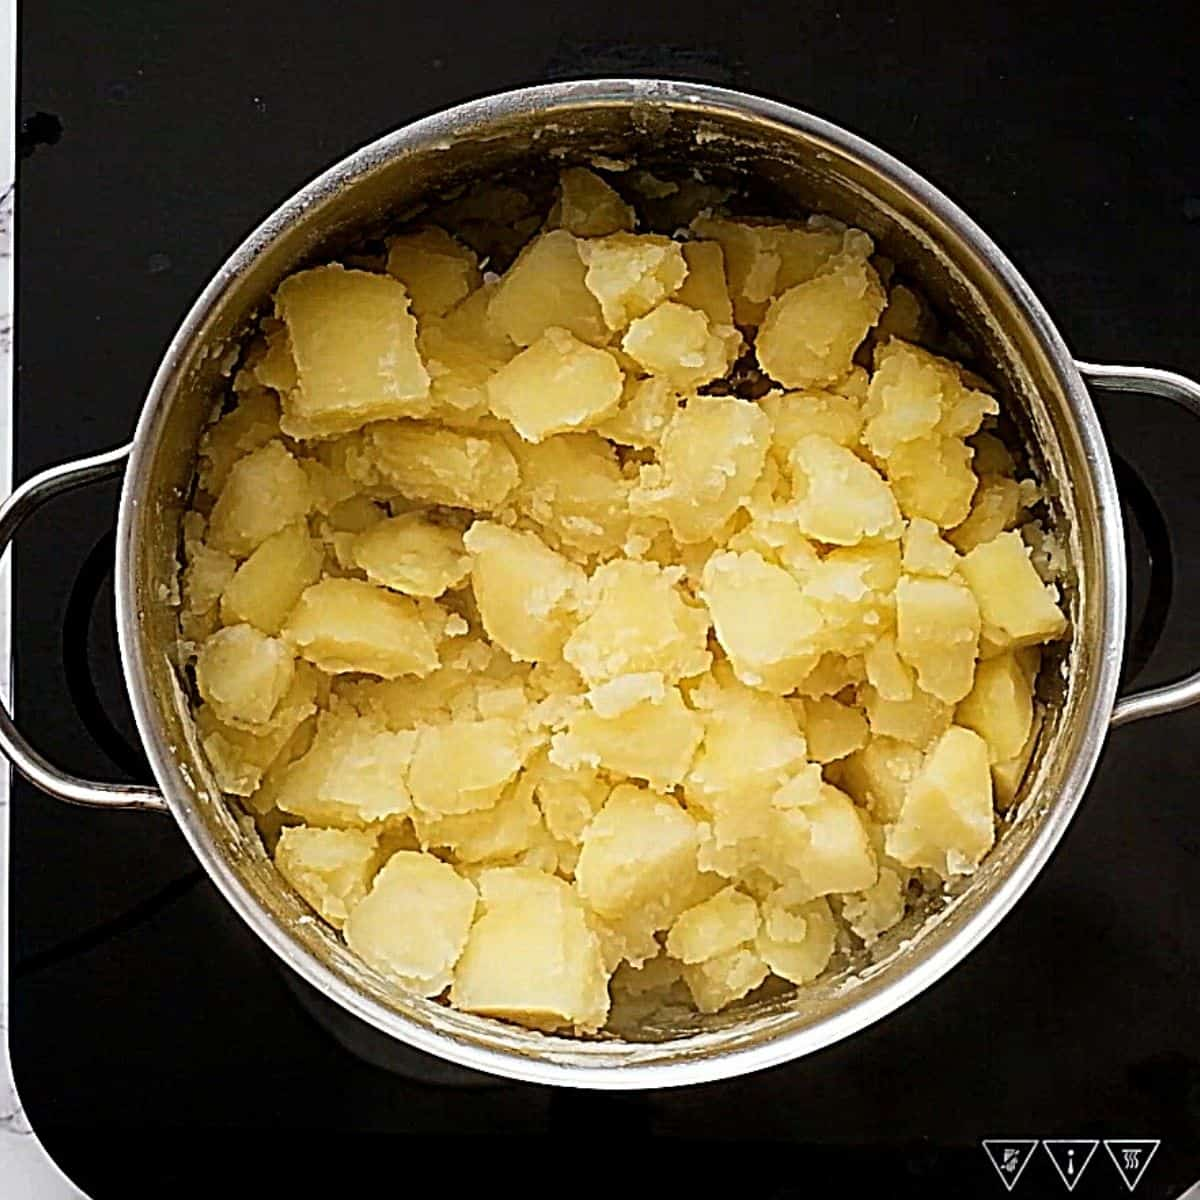 Cooked potatoes in pan.